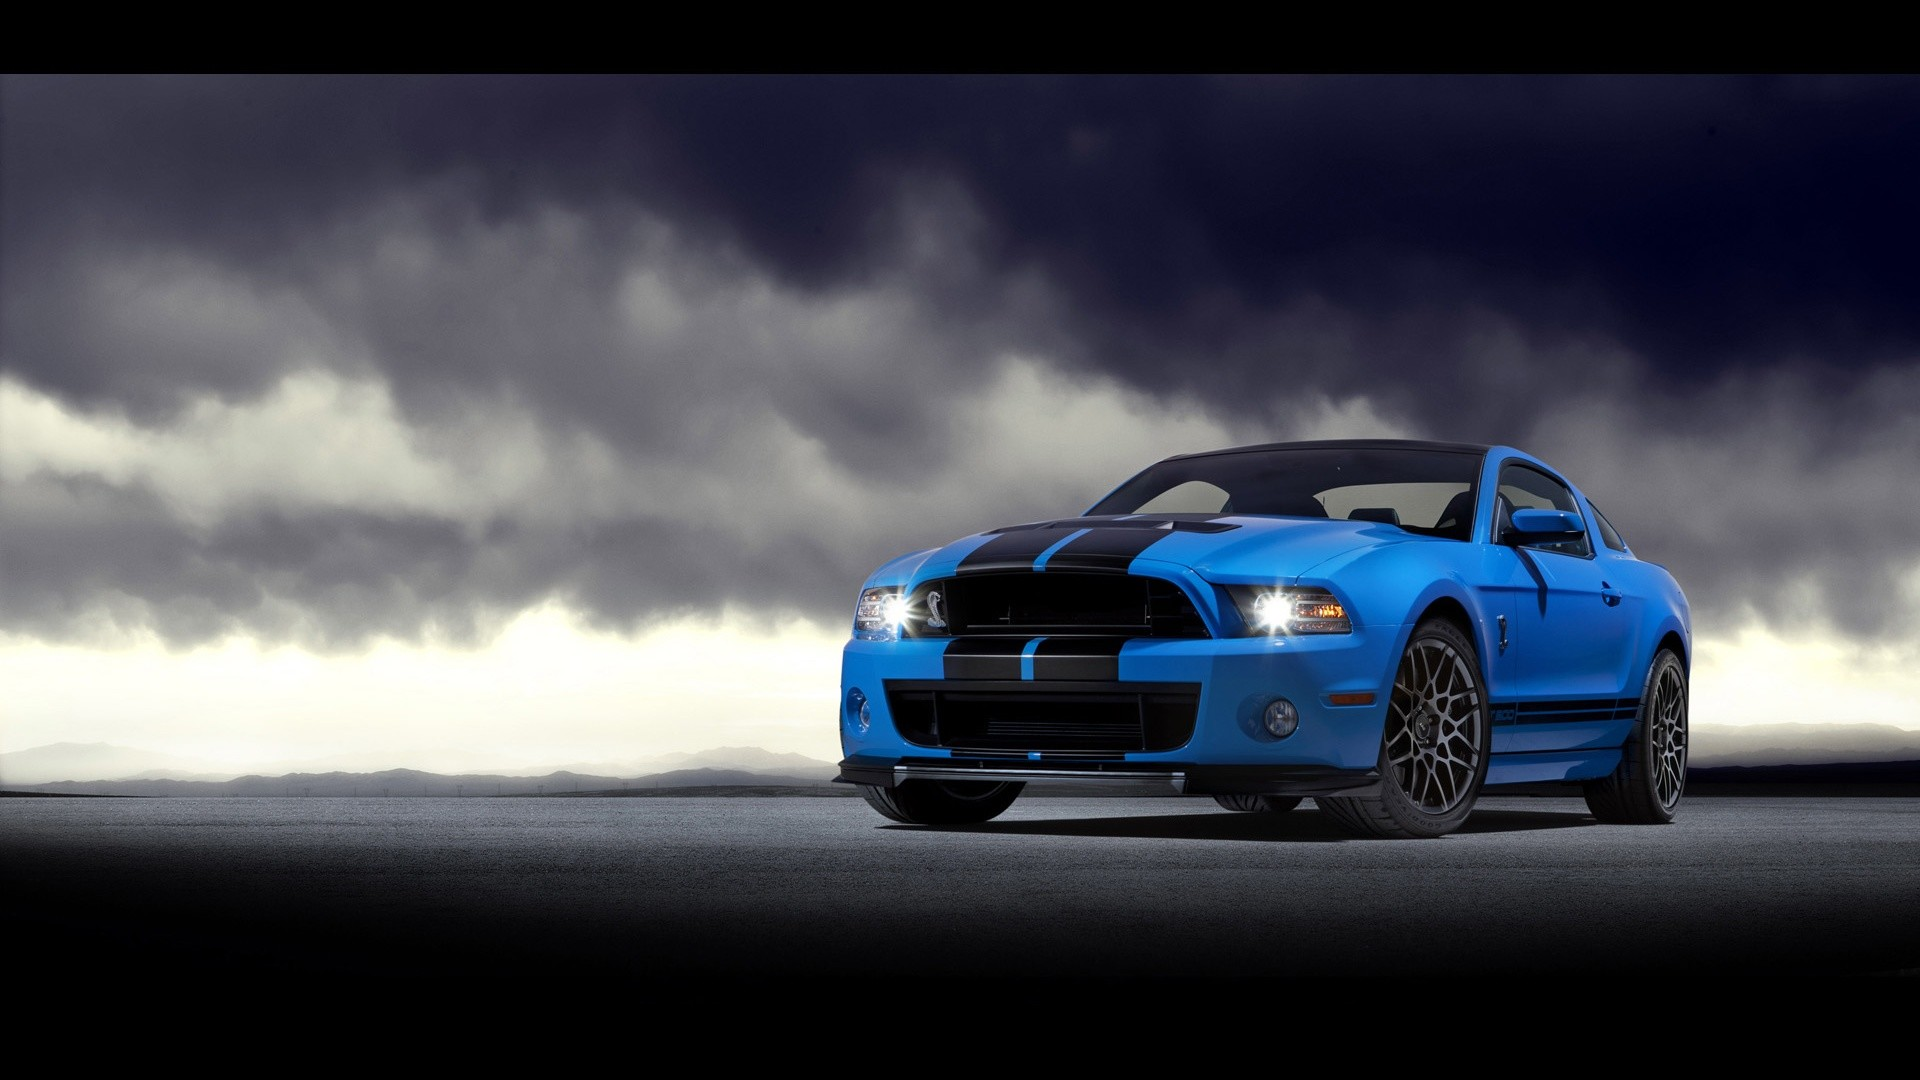 hd wallpapers for pc 1920x1080 free download,land vehicle,vehicle,car,shelby mustang,automotive design